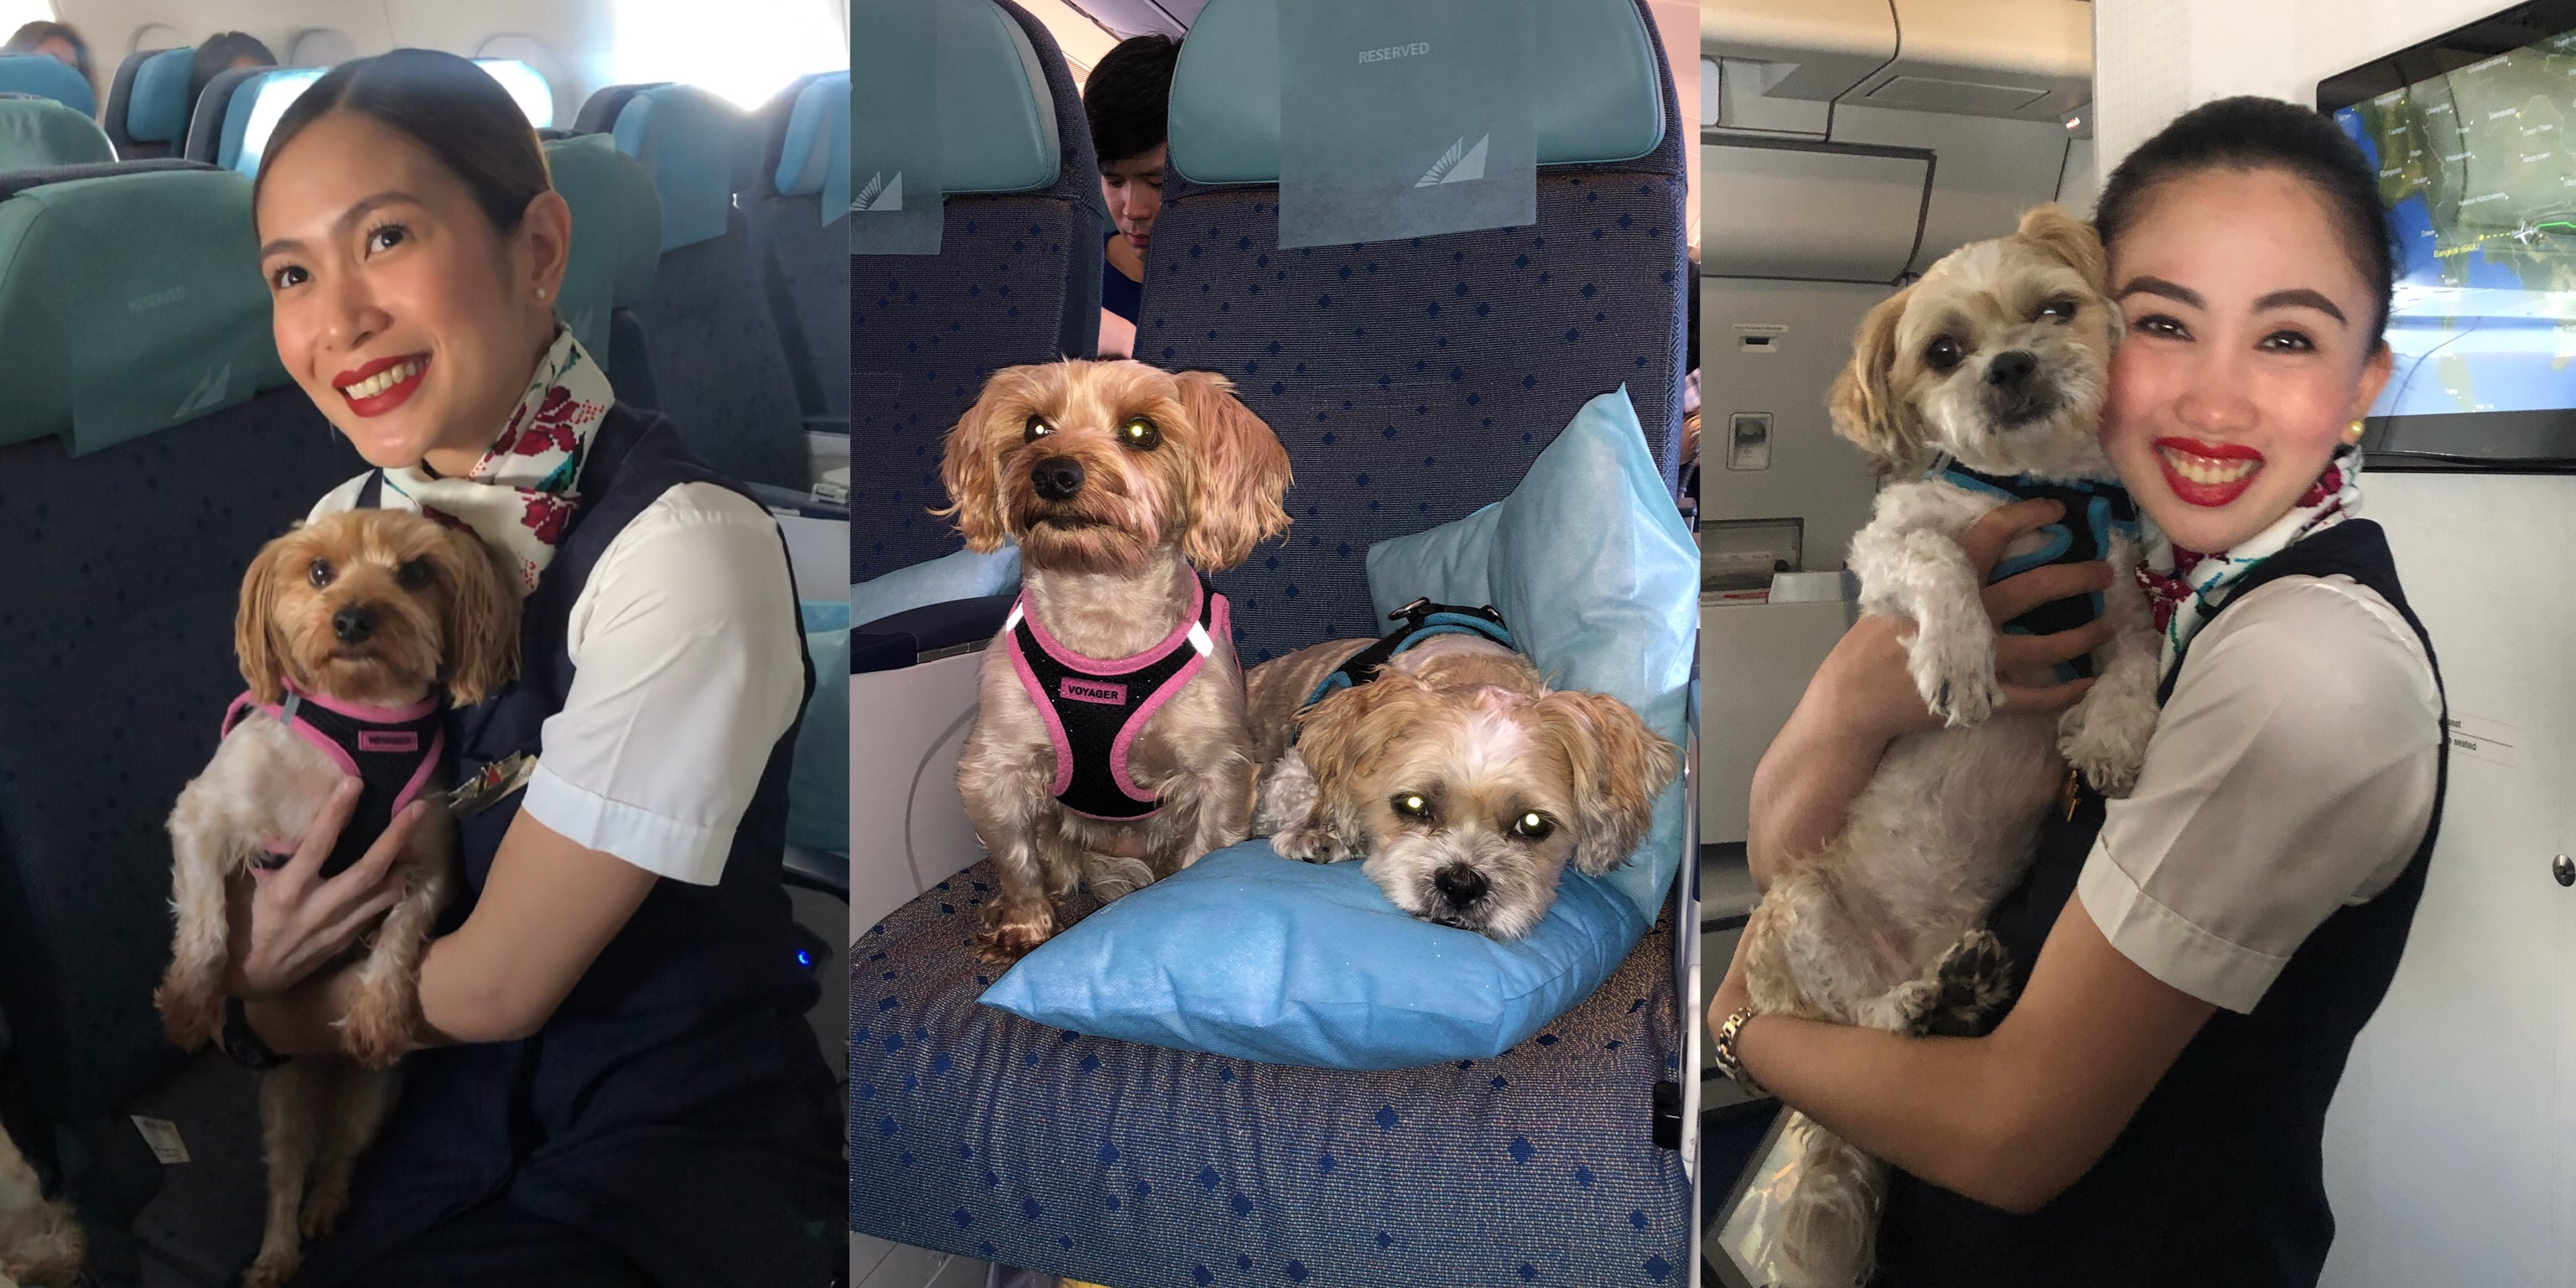 Philippine Airlines Review (Traveling with My Dogs)